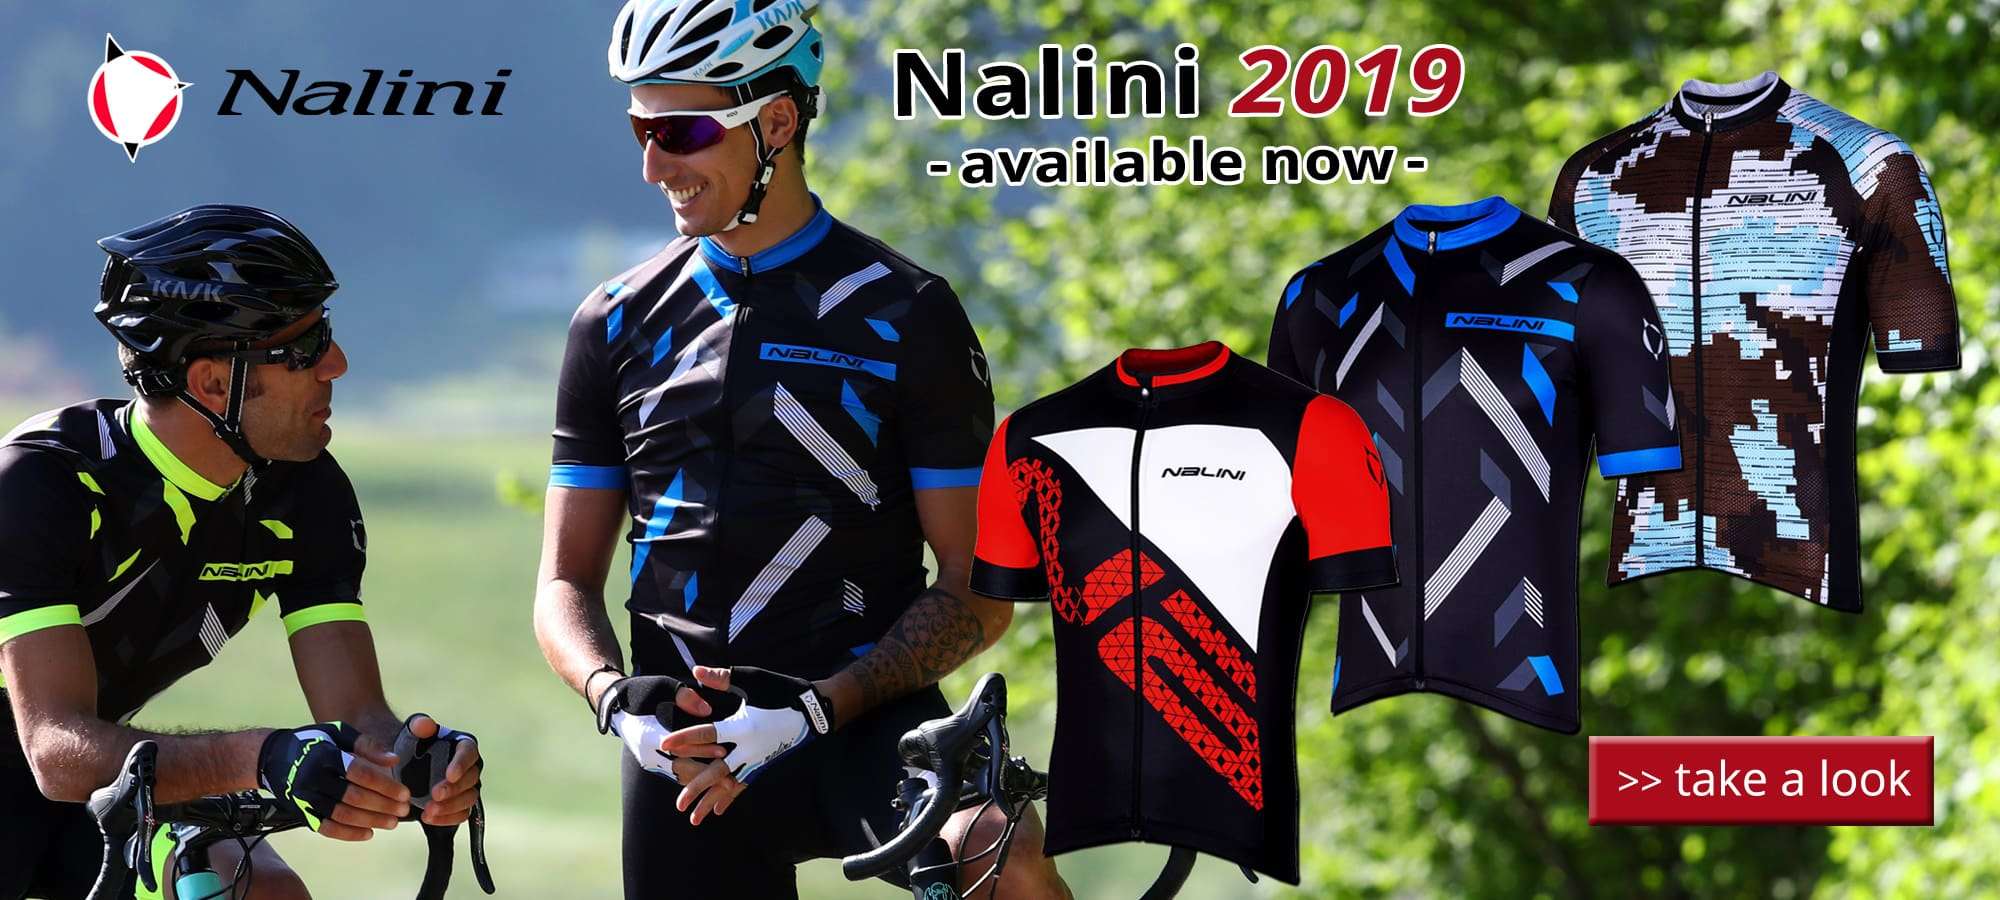 Nalini spring / summer 2019 available now